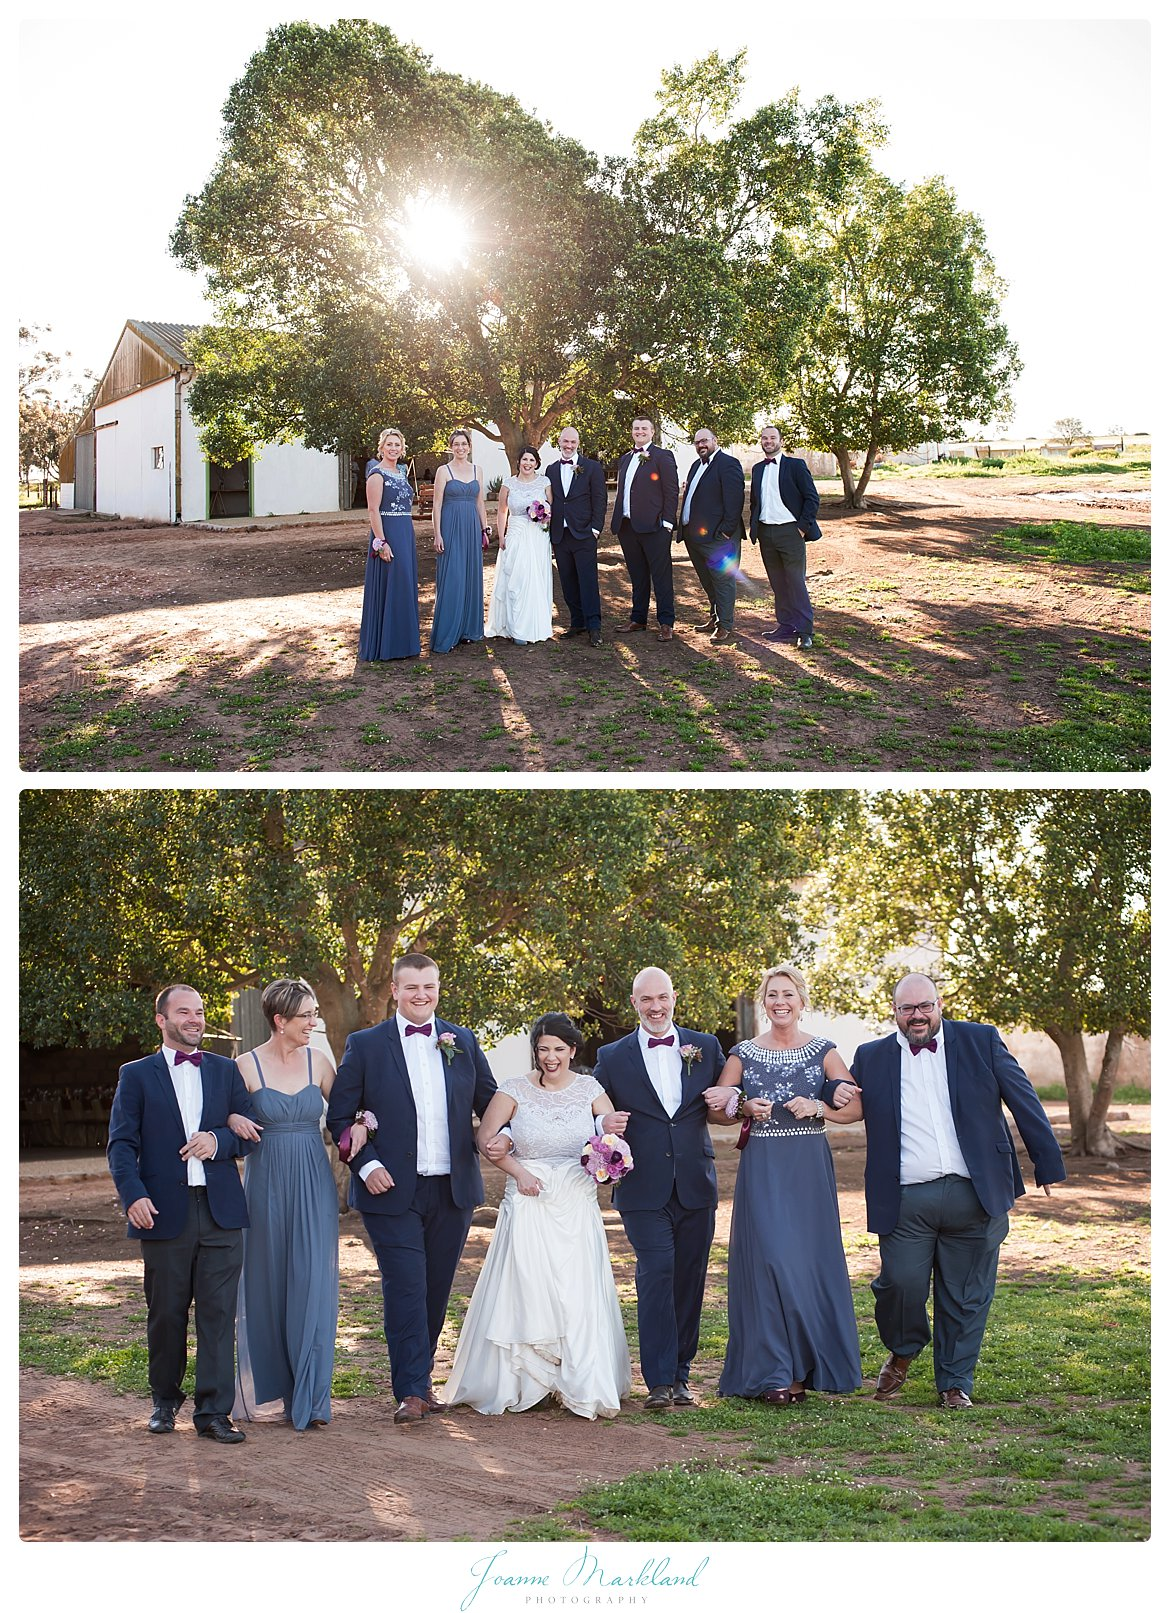 boorwater-wedding-hopefield-west-coast-cape-town-joanne-markland-photography-029